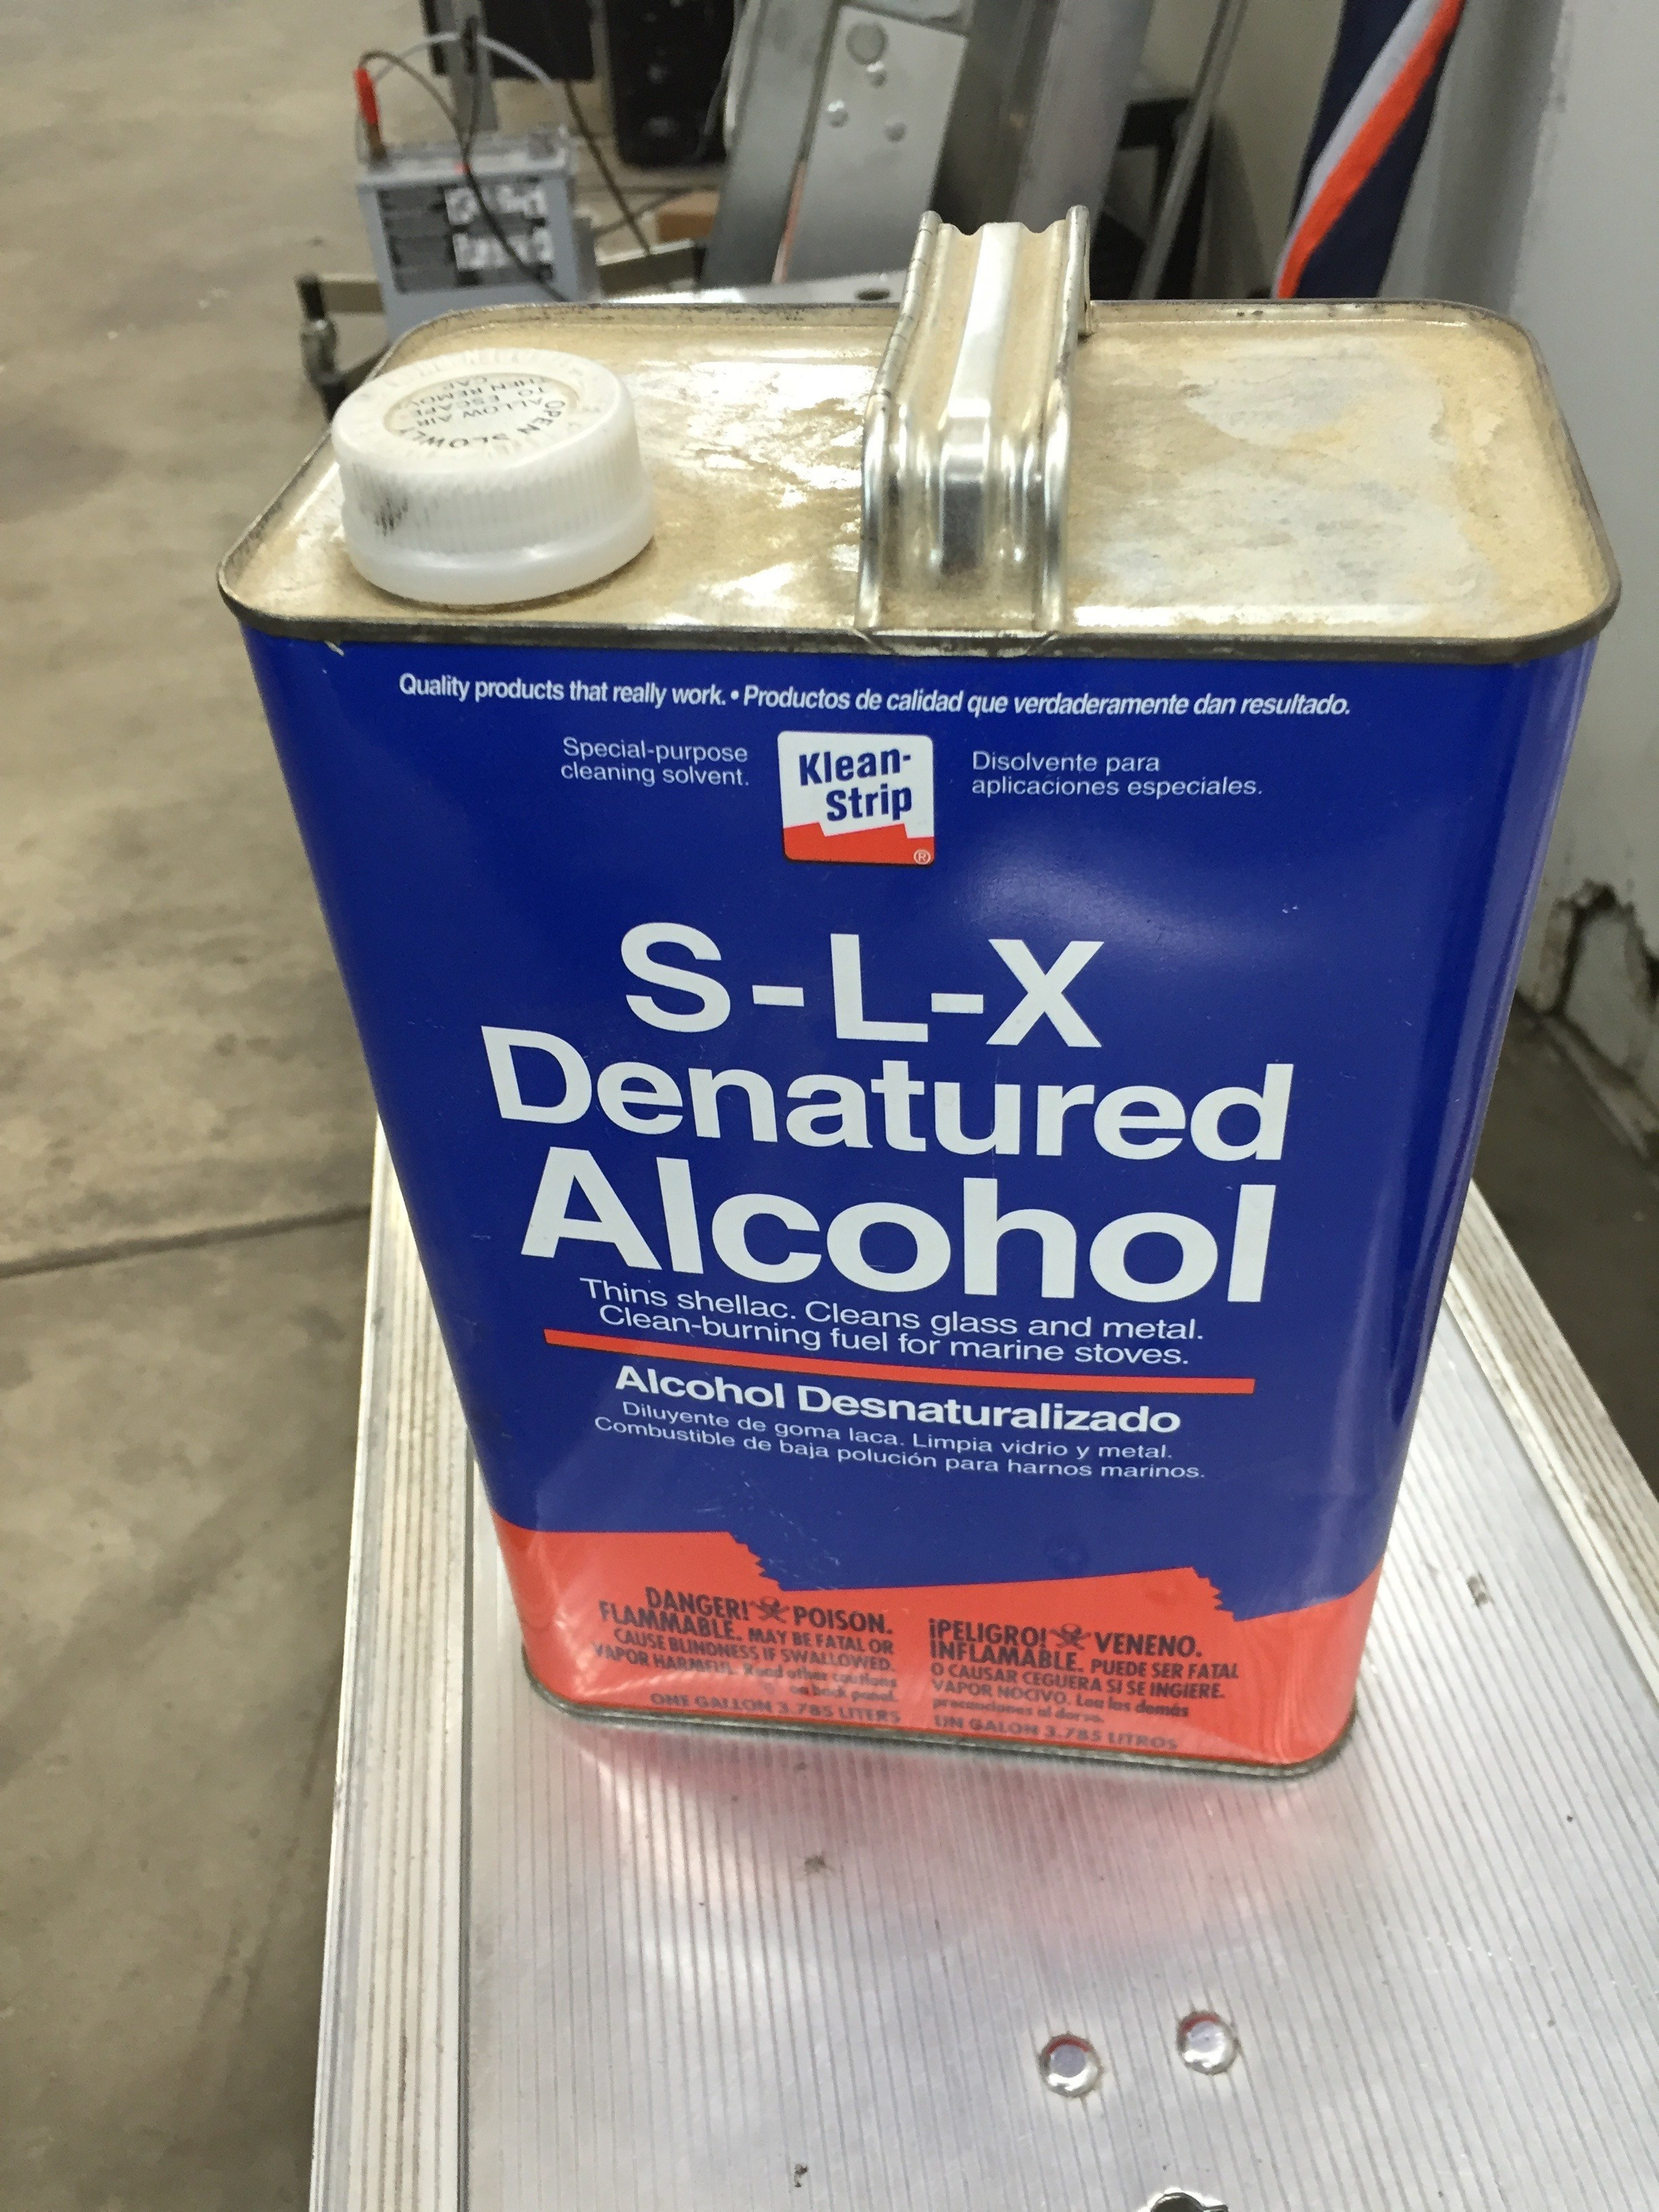 3 kinds of alcohol for glue pull dent repair, which one